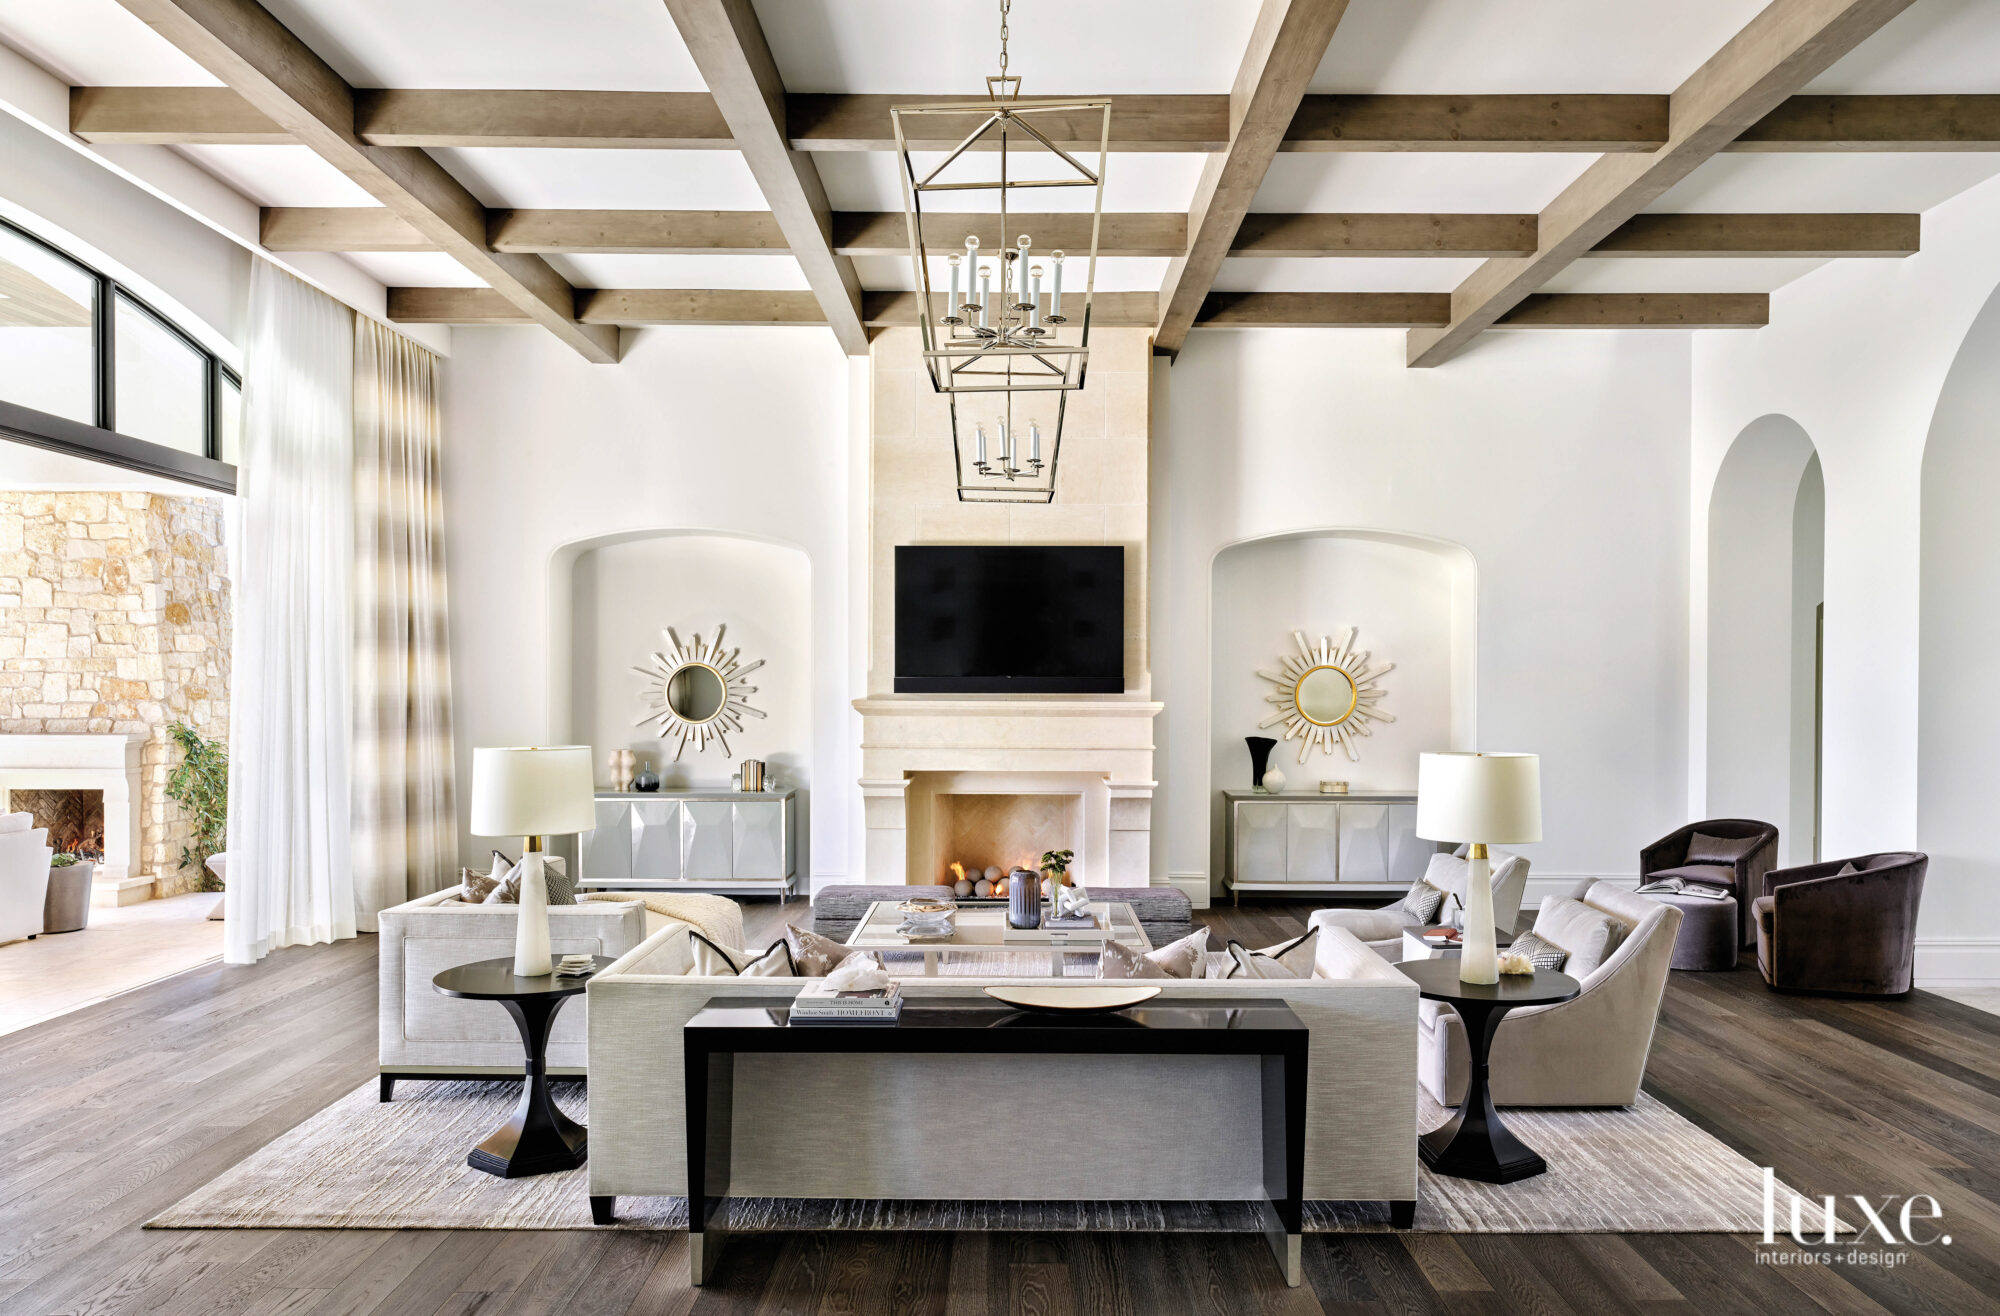 The neutral living room has wood beams, white walls and archways.